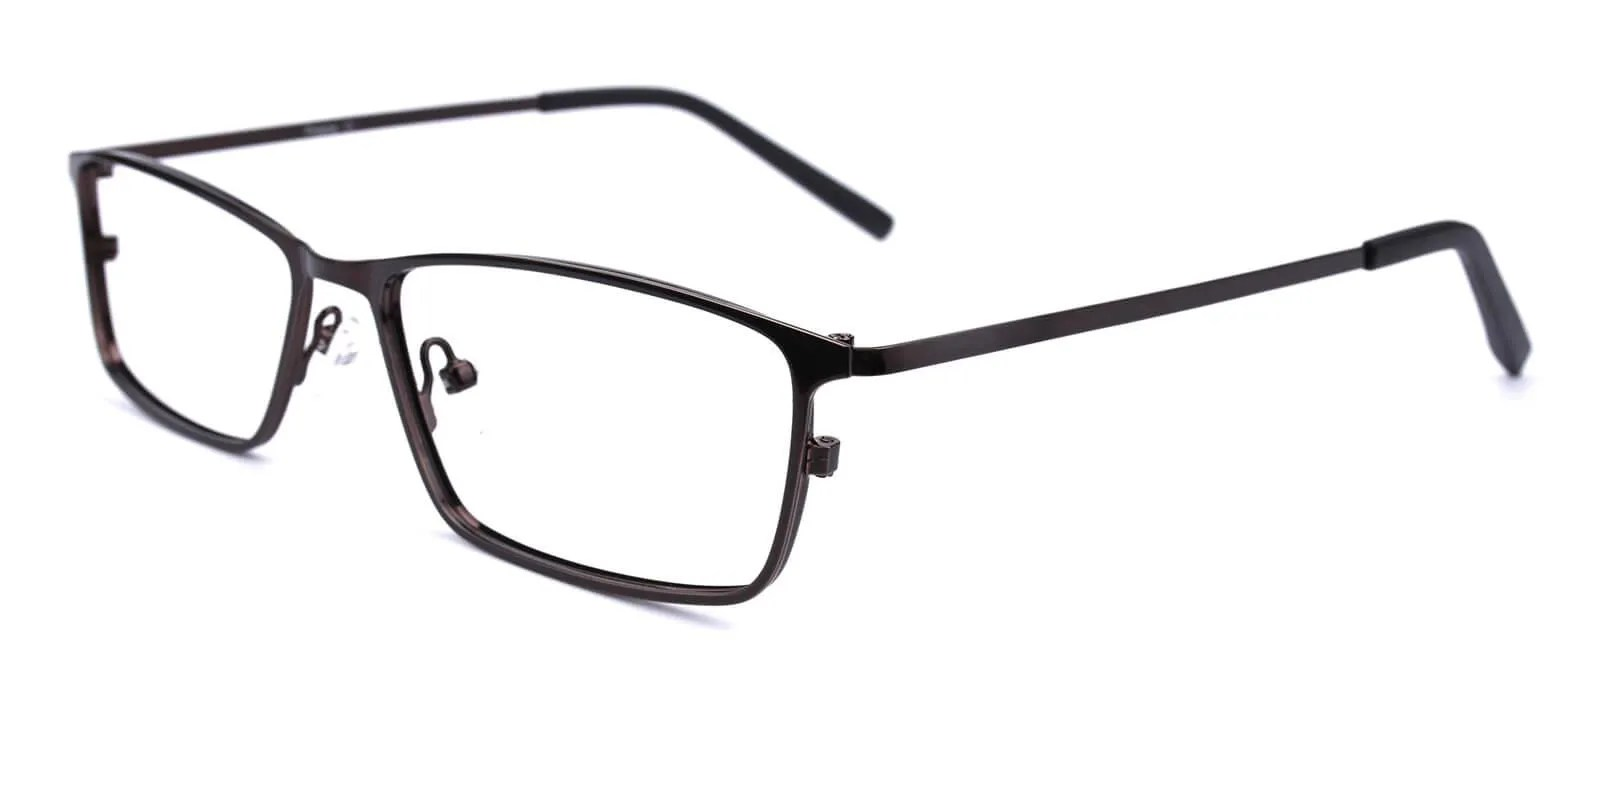 Wildfire-A modern rectangular frame made for the